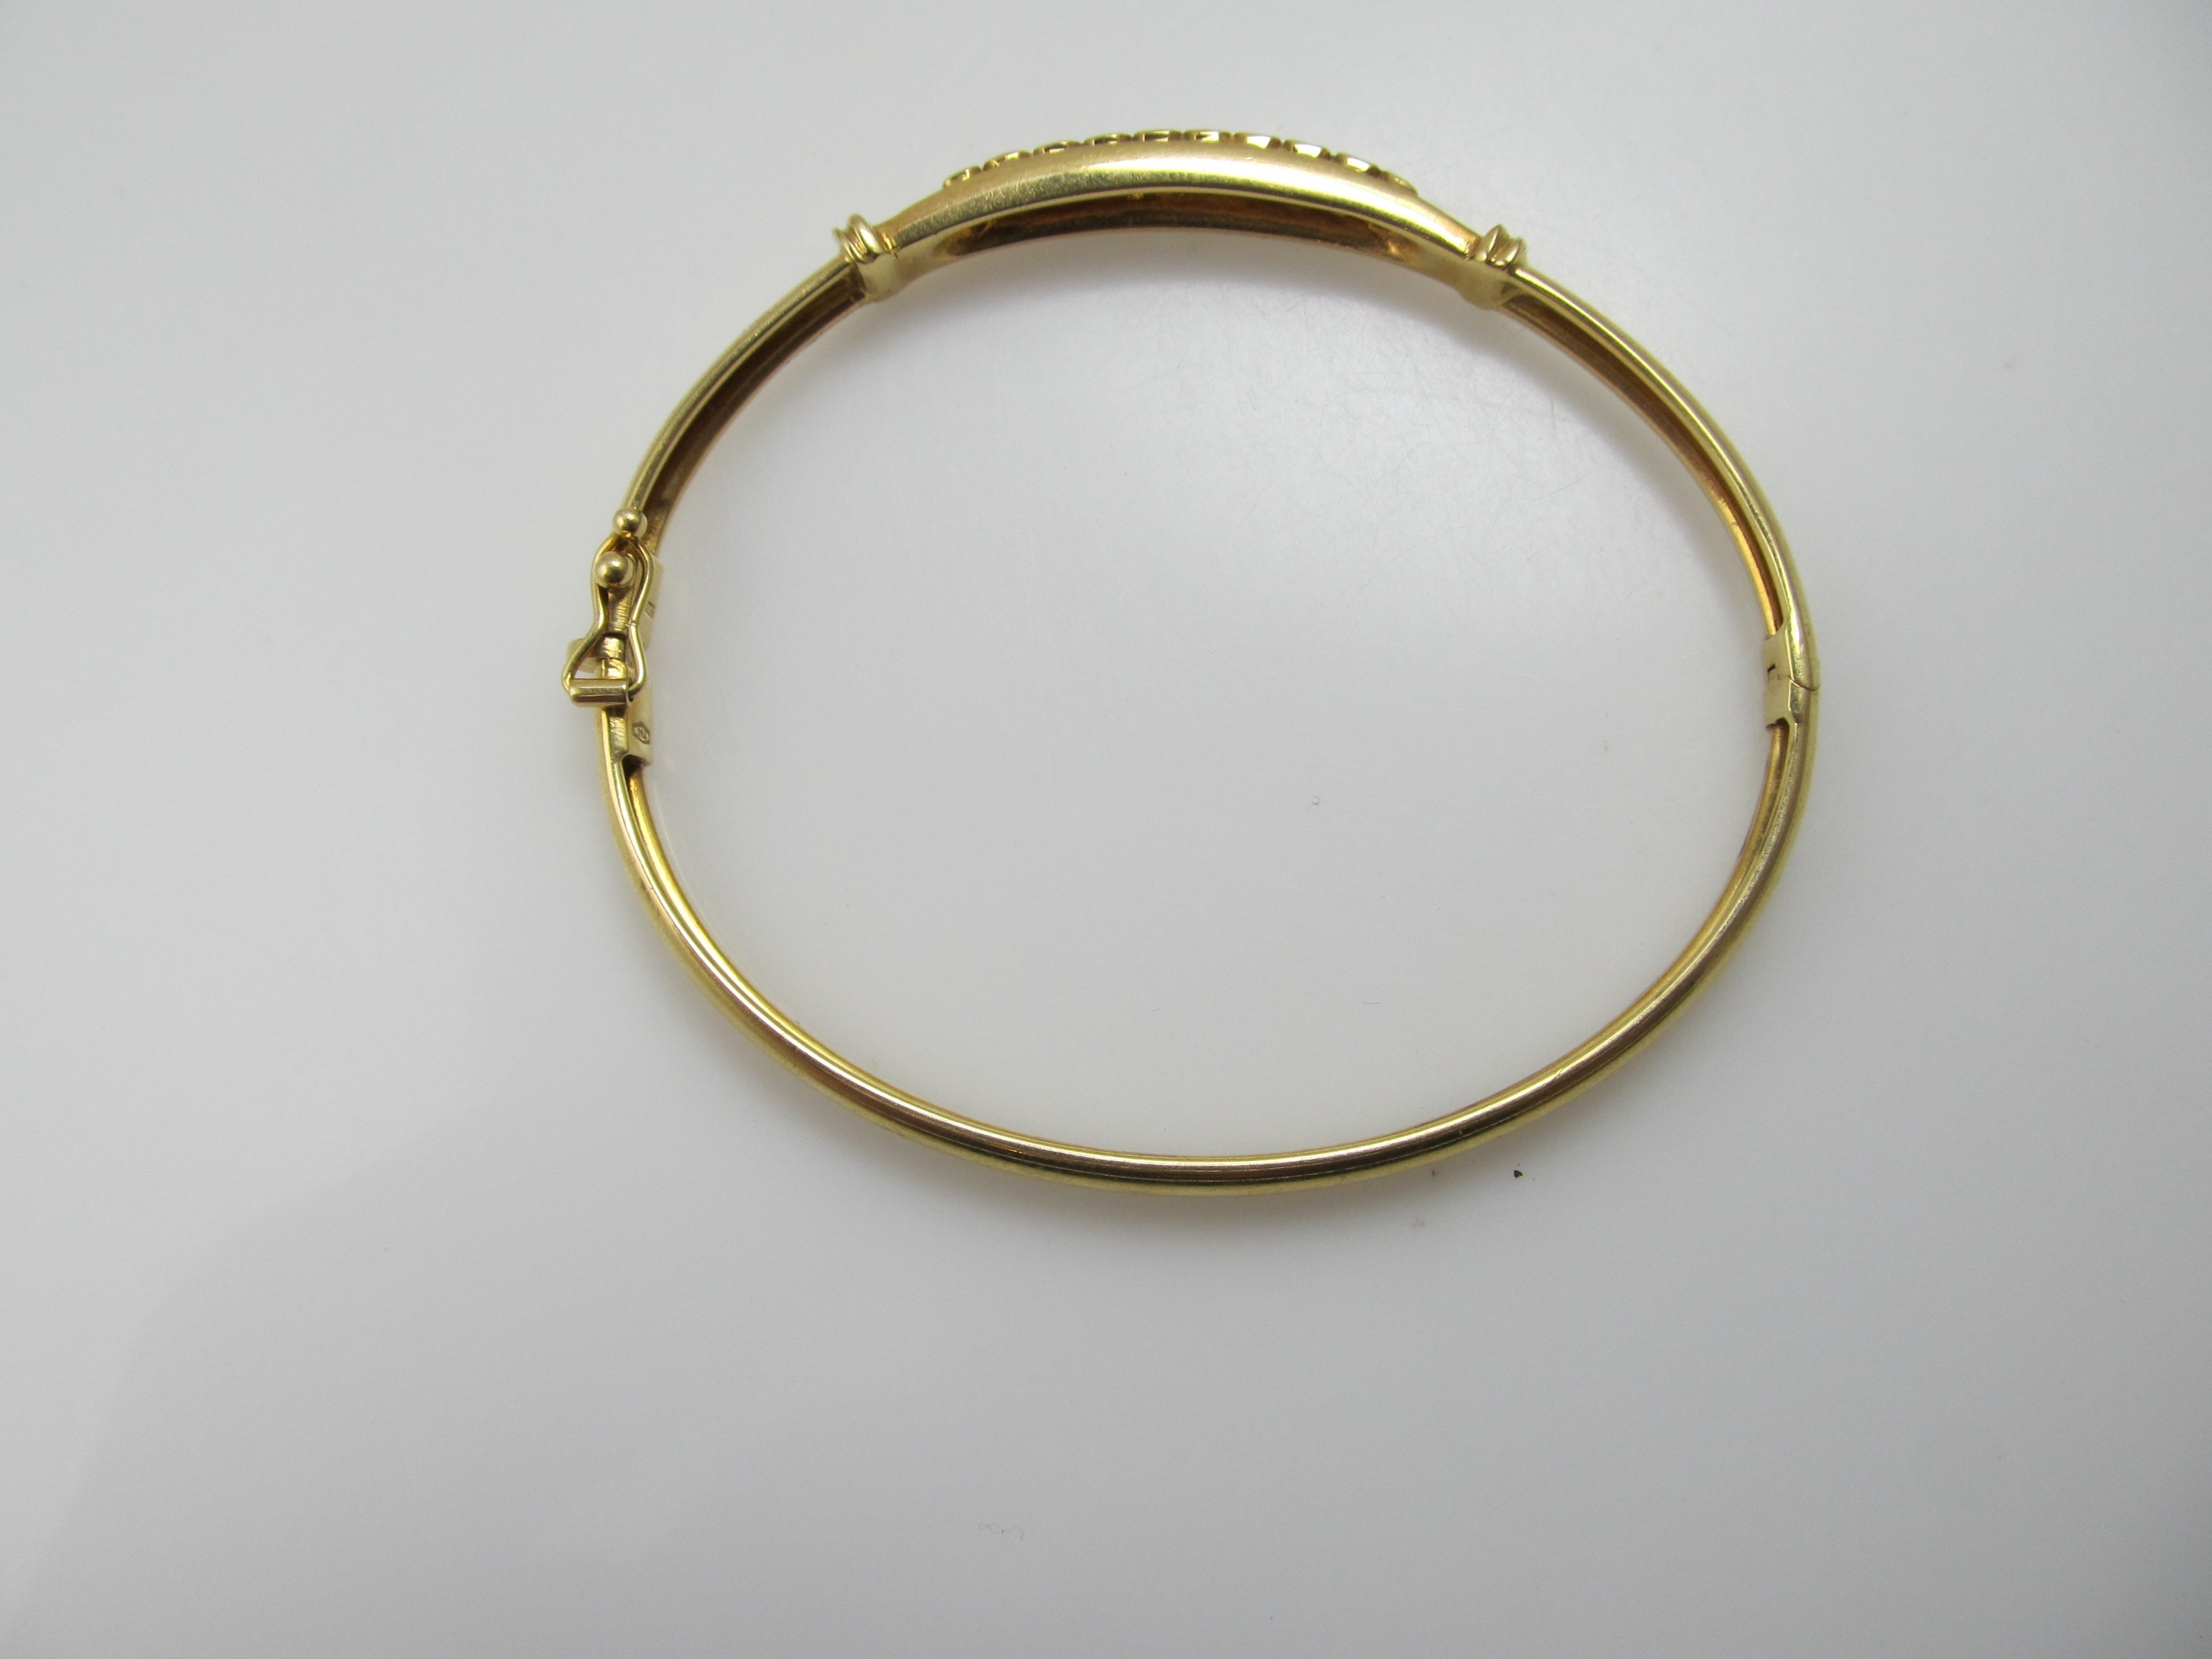 gold bracelet jewelry opulent jewelers astrale bulgari bangles bangle yellow